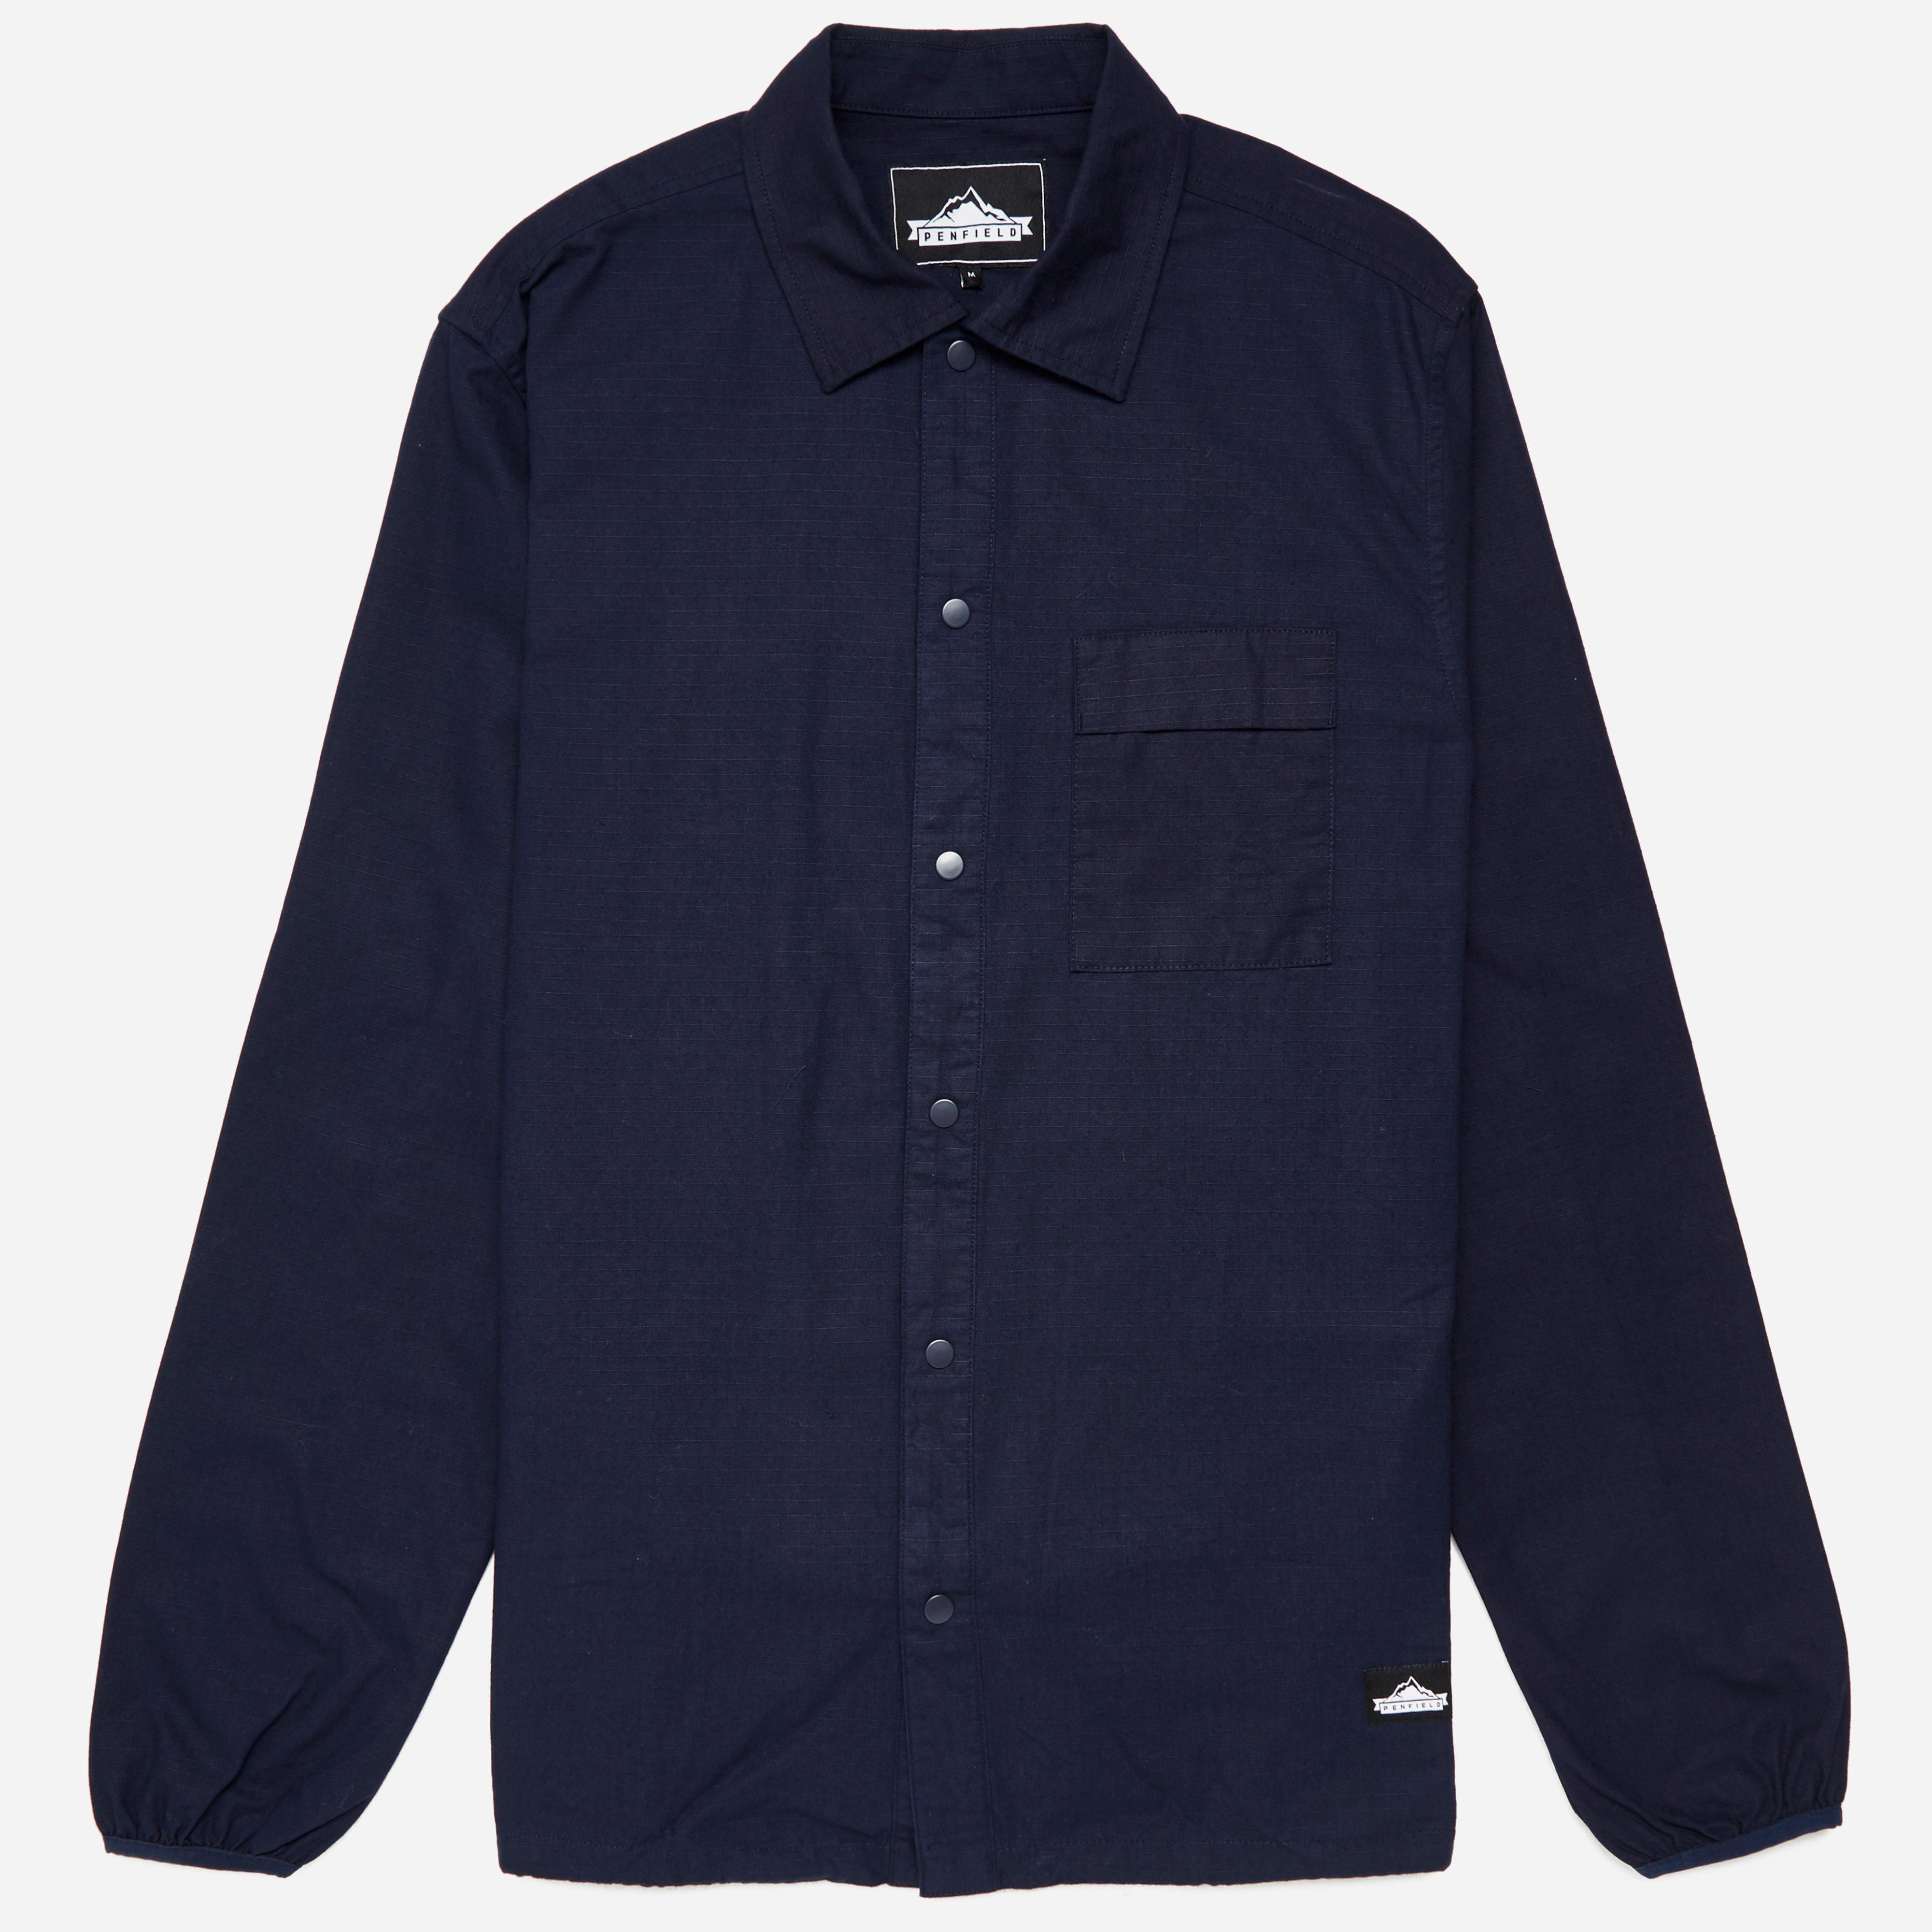 Penfield Blackstone Ripstop Shirt